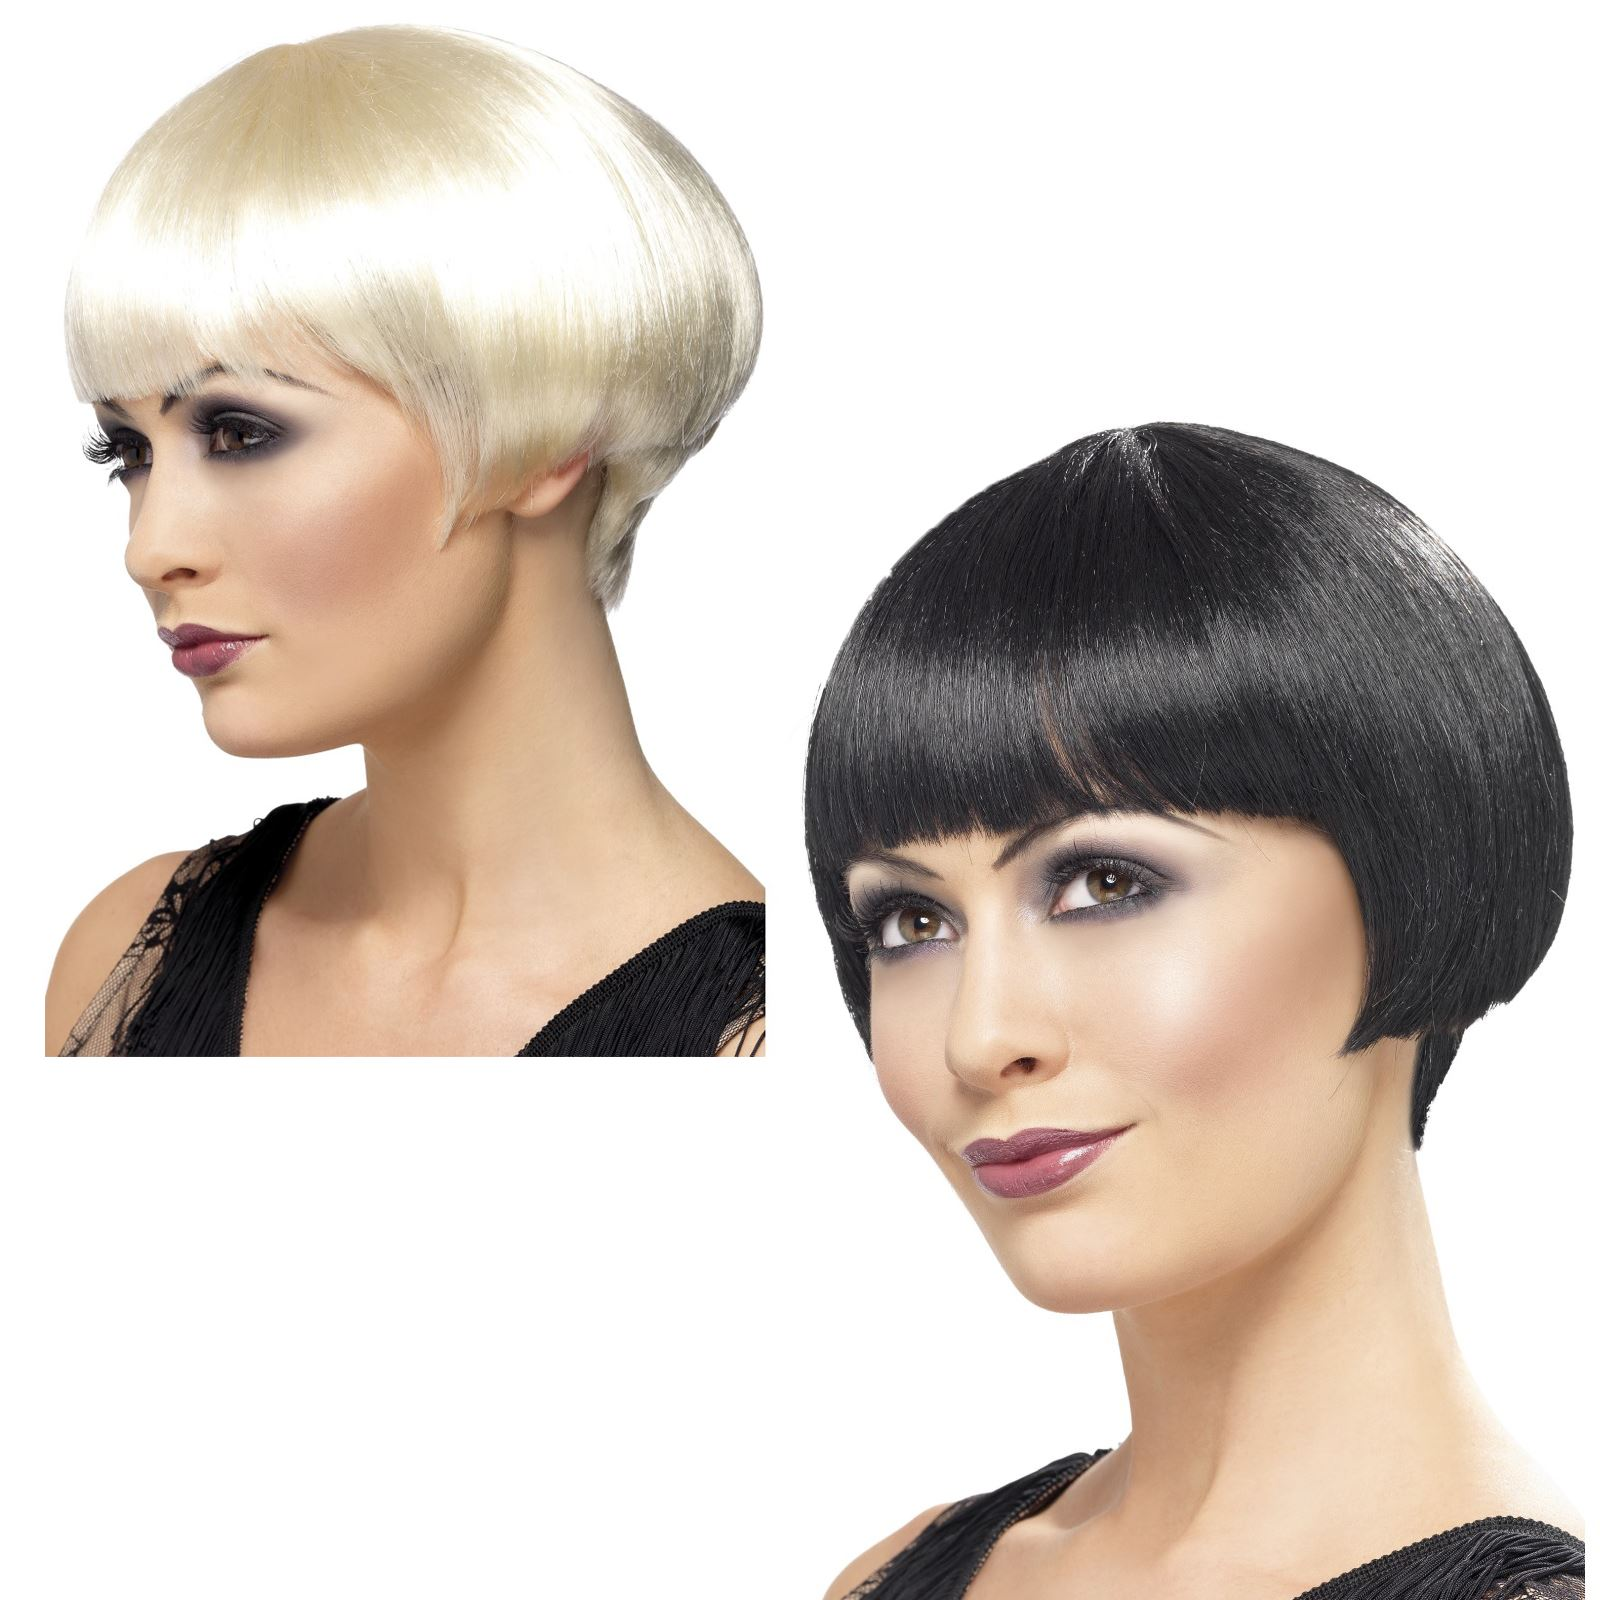 donne adulti RUGGENTI 1920s stile Charleston Bob Wig Vestito da ... 8edb4ac16d7